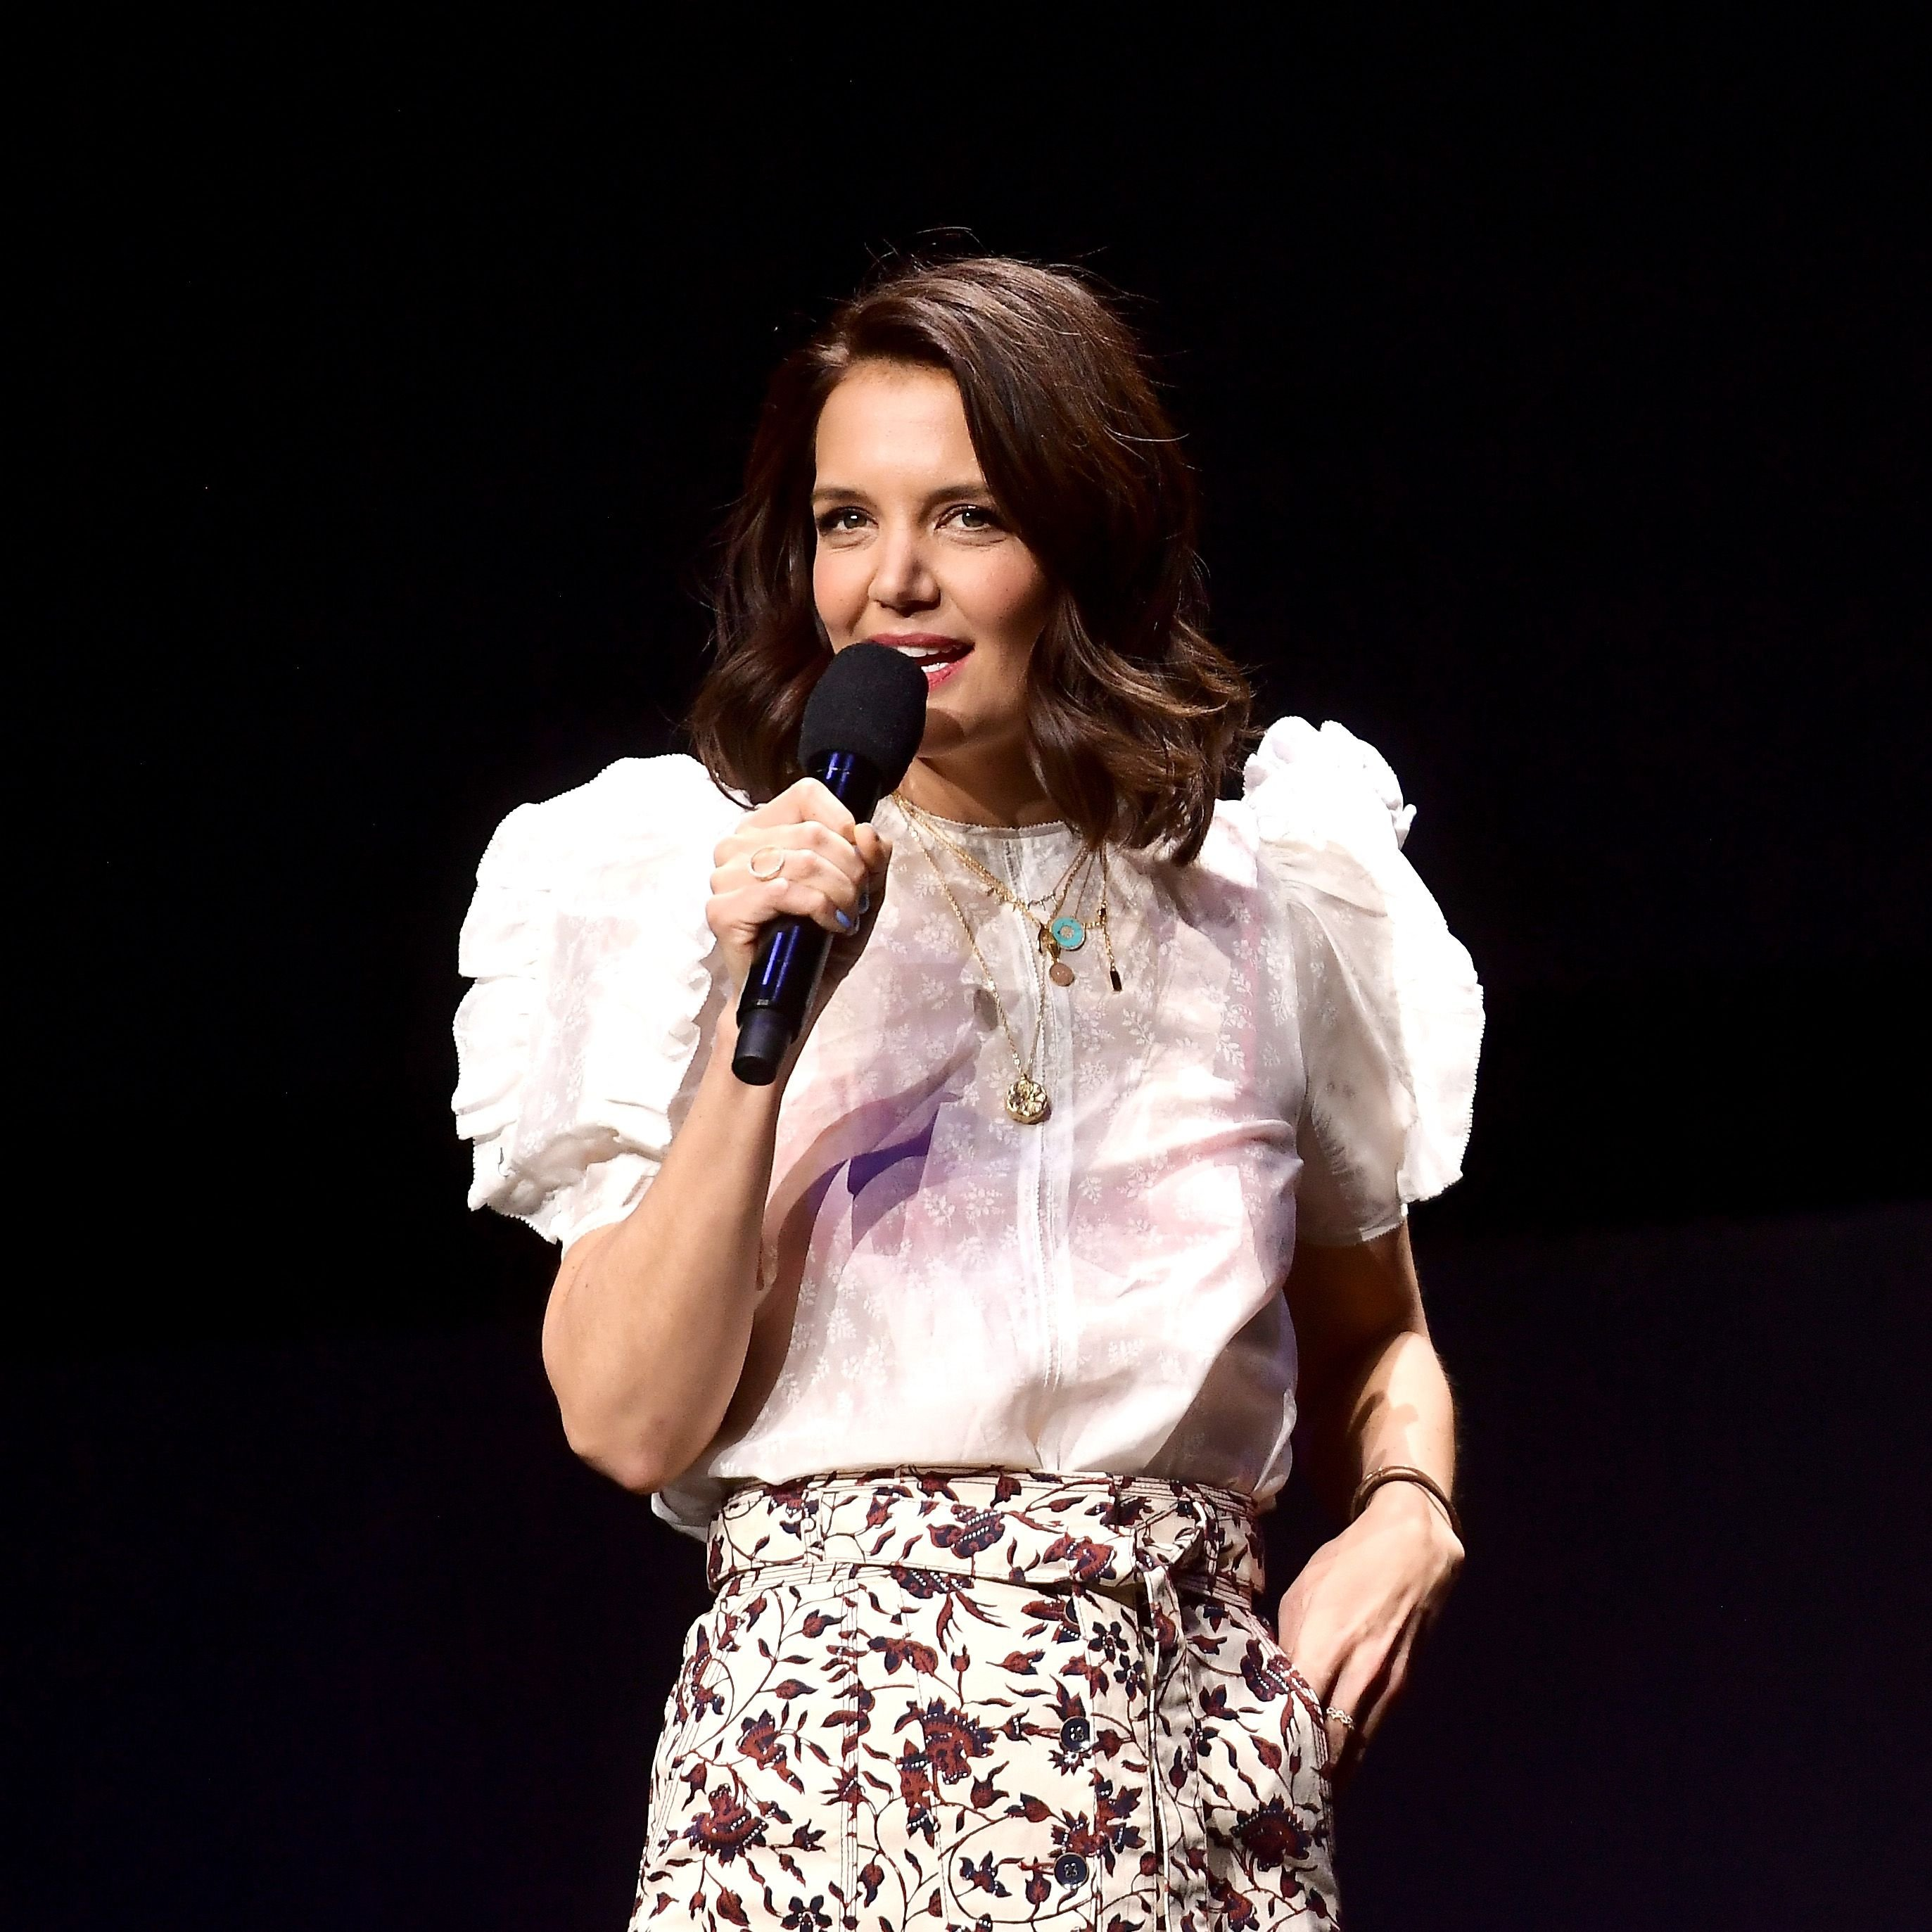 Katie Holmes speaks onstage at CinemaCon 2019 The State of the Industry and STXfilms Presentation at The Colosseum at Caesars Palace during CinemaCon, the official convention of the National Association of Theatre Owners, on April 2, 2019 | Photo: Getty Images